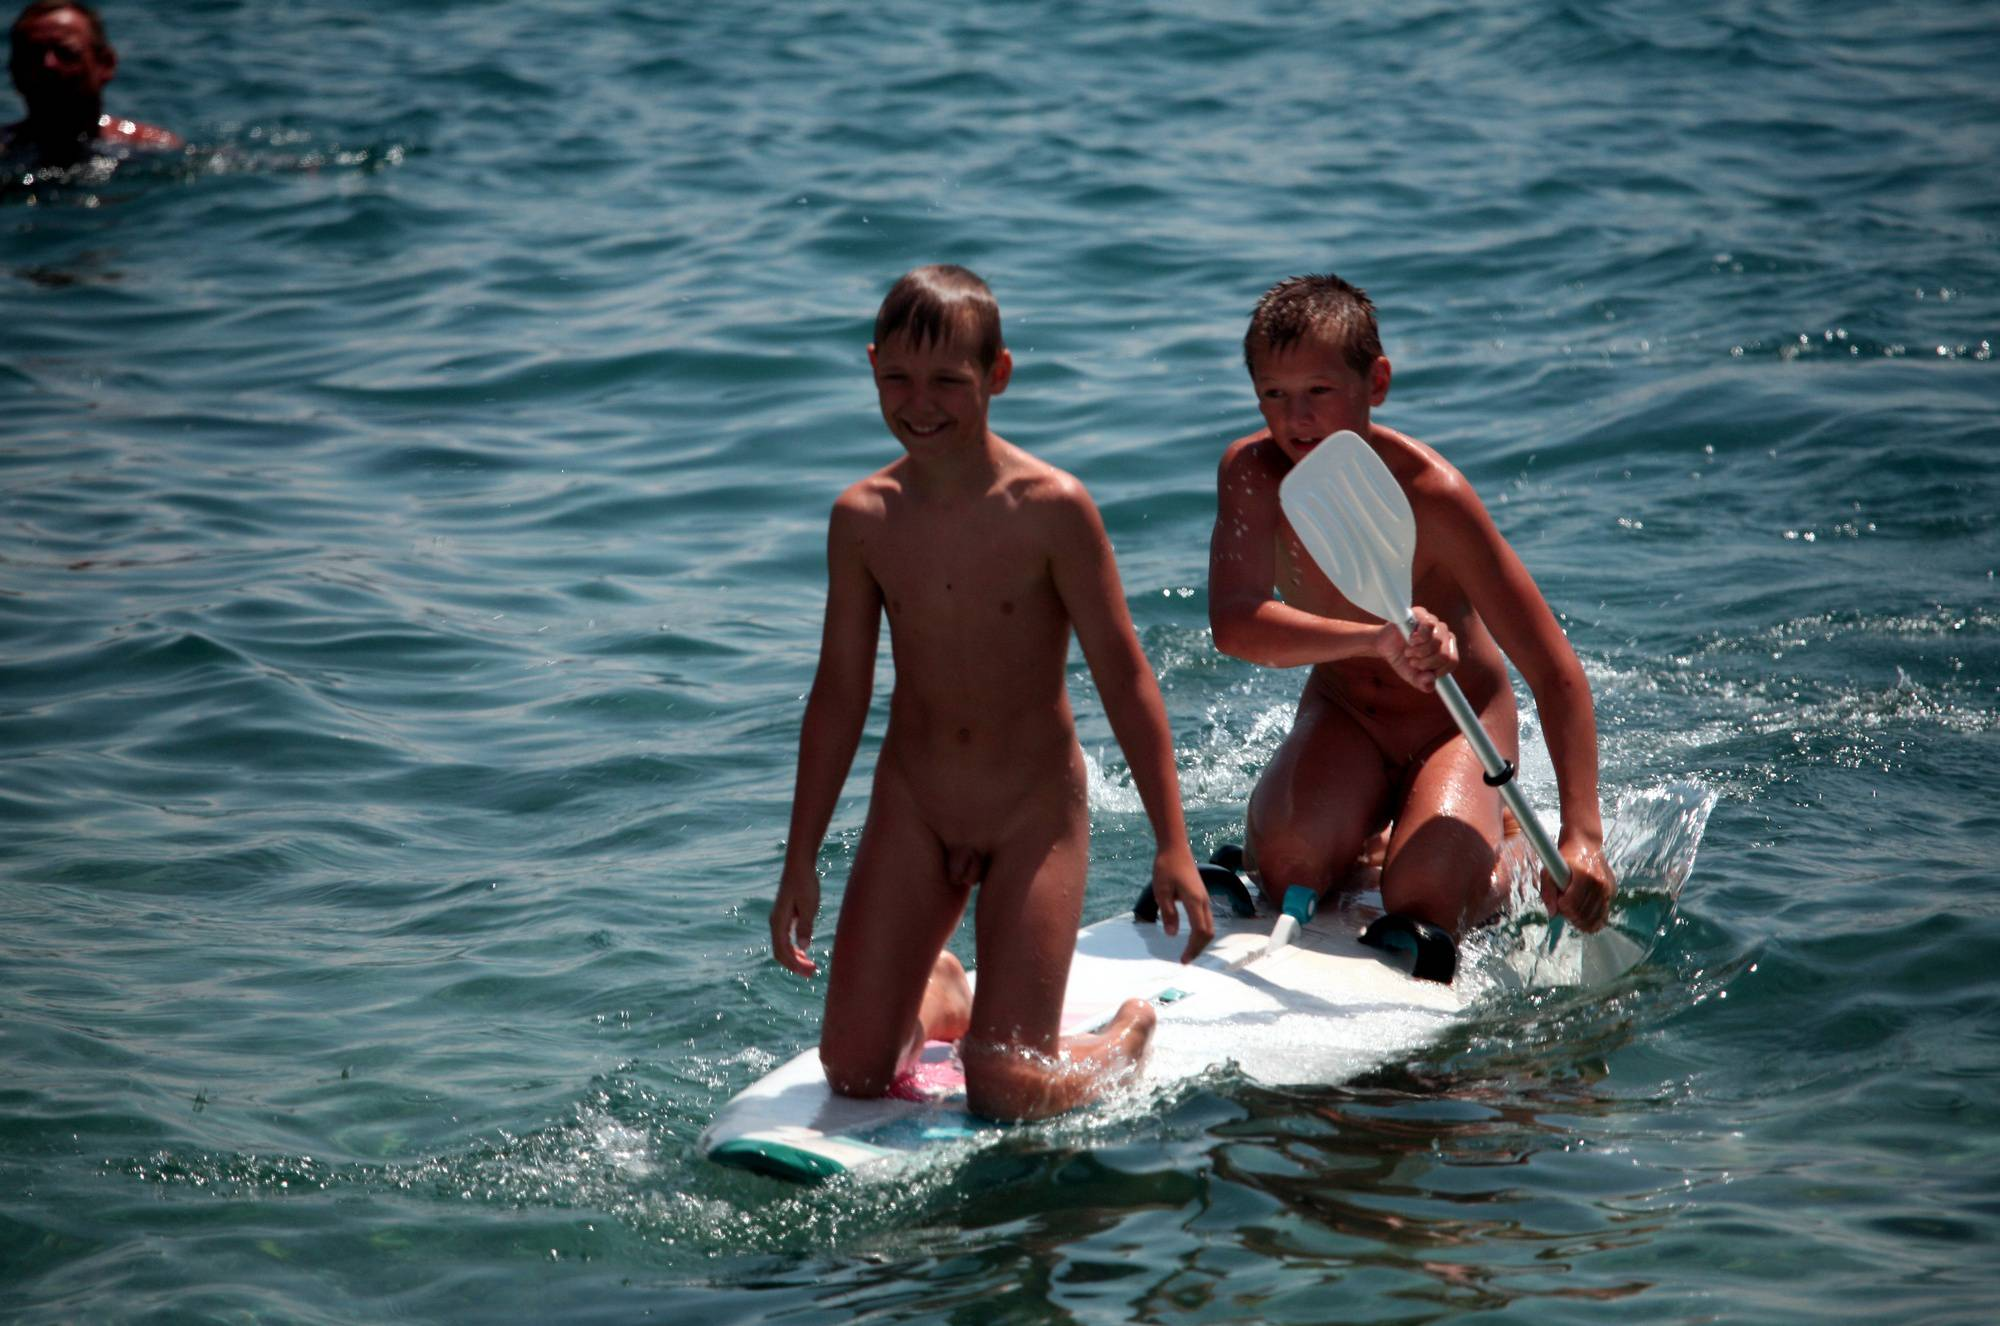 Boys Nudist Water Surfing - 1